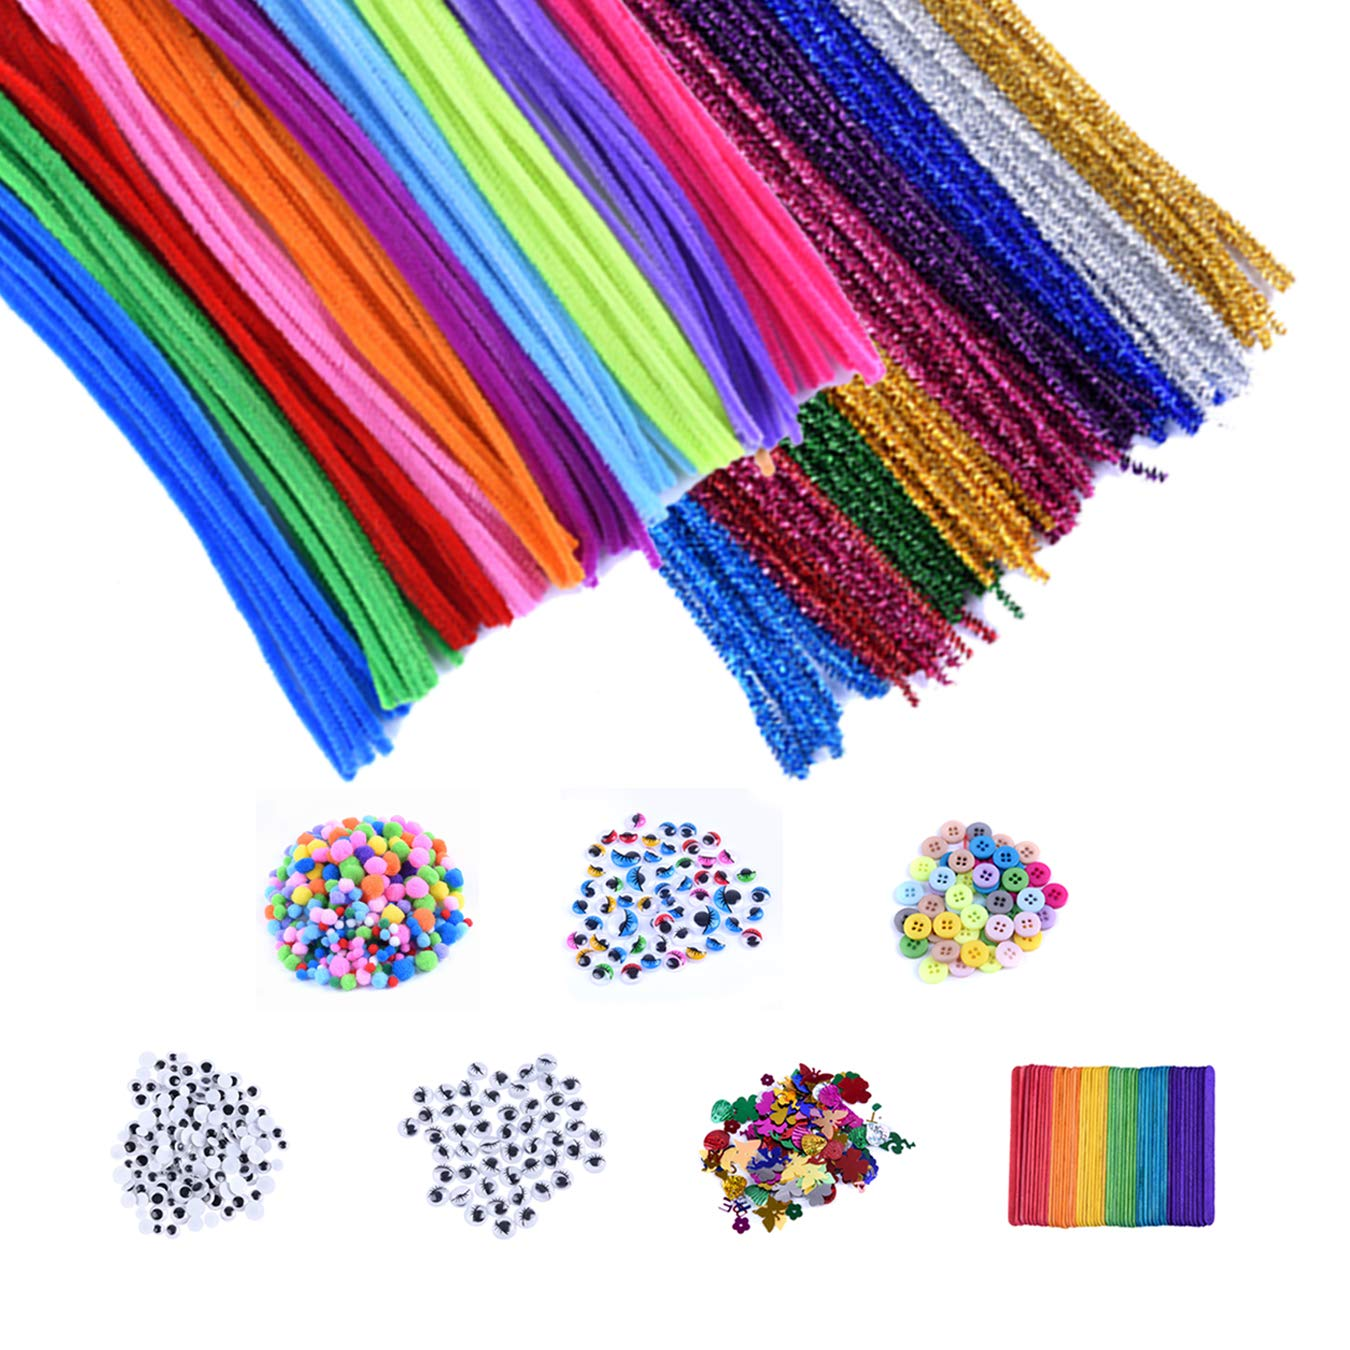 Kids Art & Craft Supplies Assortment Set for School Projects, DIY Activities & Parties, Includes Pipe Cleaners/Chenile, Pom Poms, Googly Eyes, Craft Sticks, Buttons & Sequins (Pack of 1090) by EpiqueO Epique Occasions